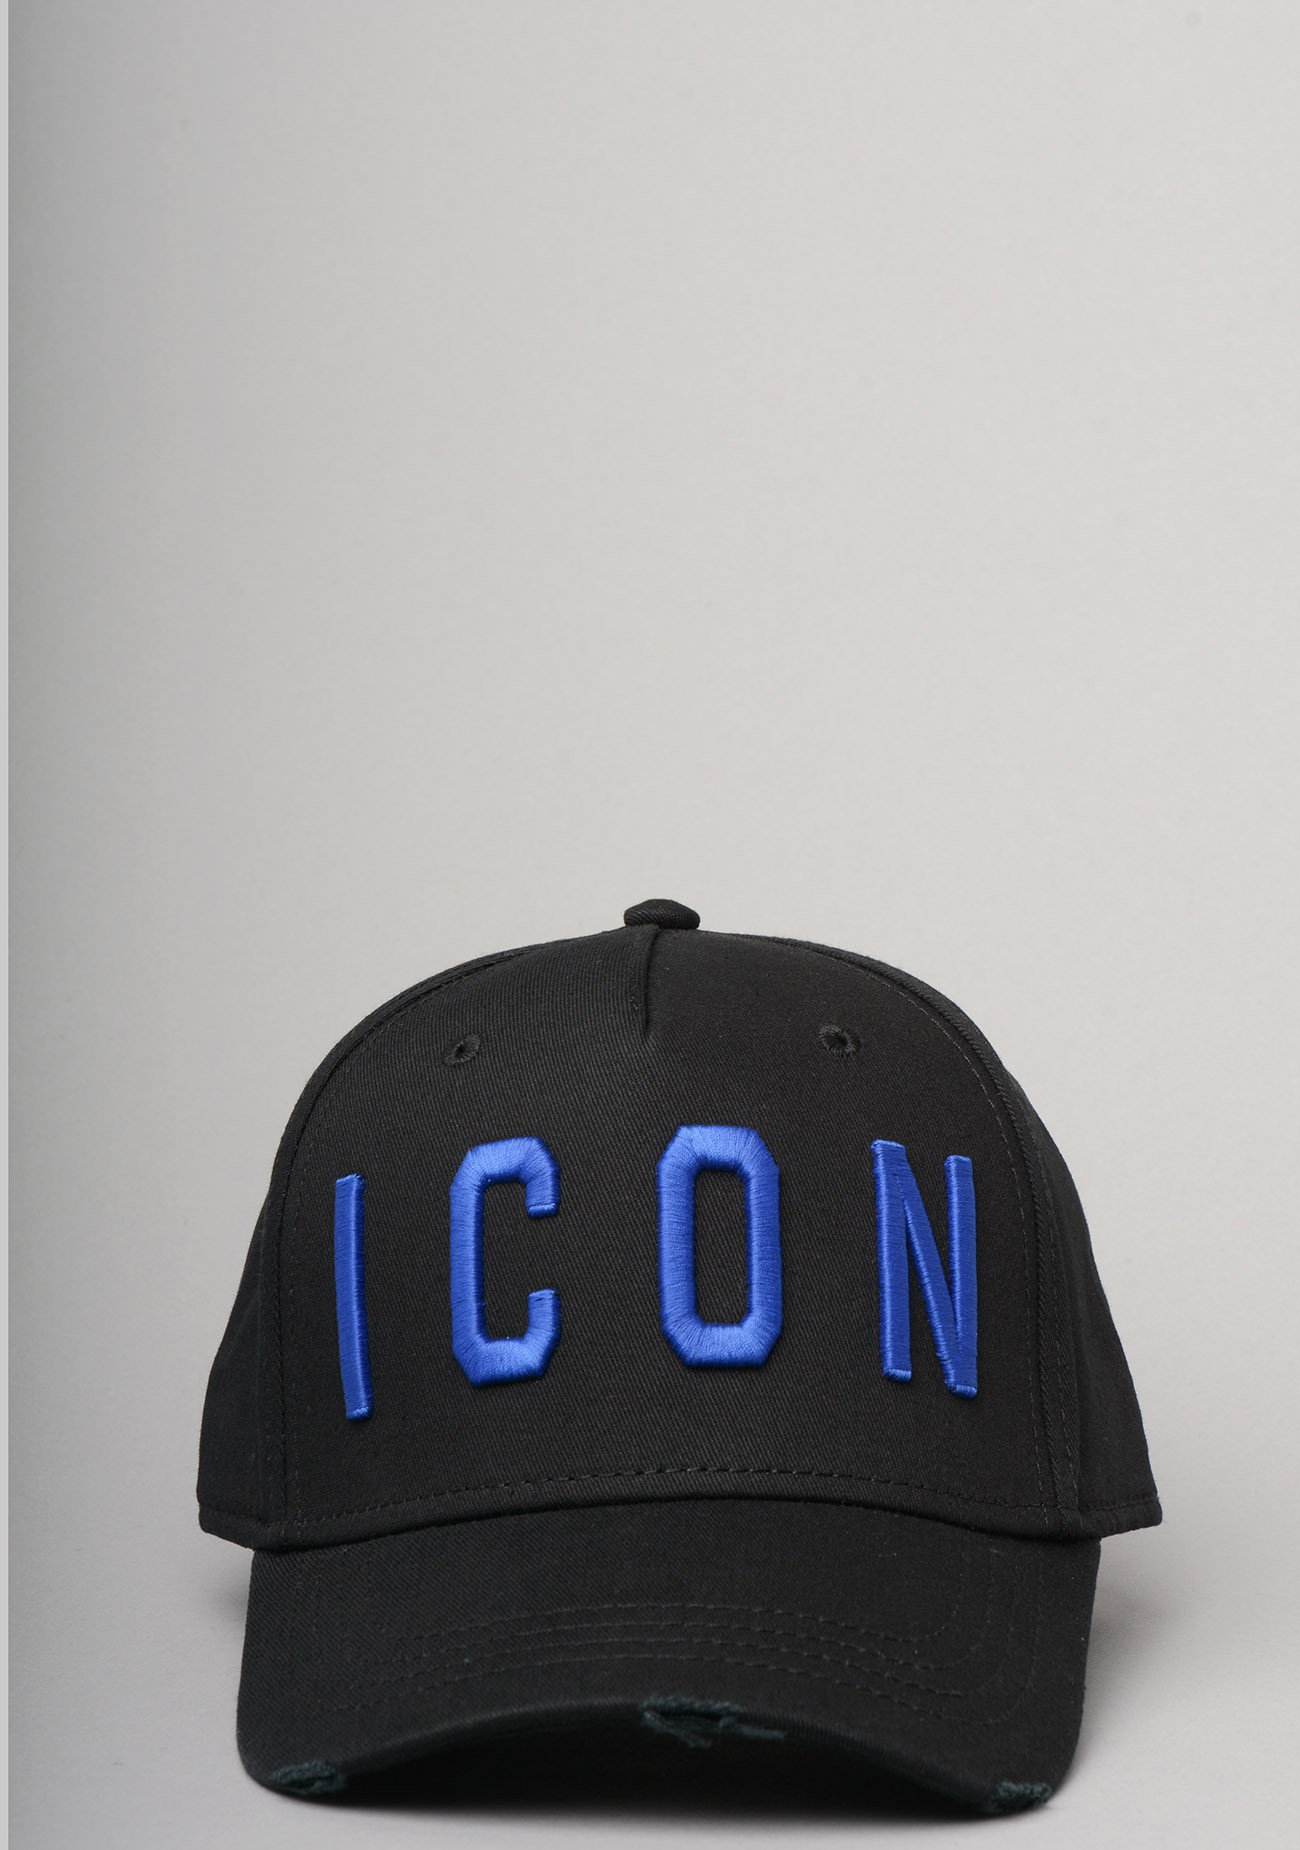 36864f28b ICON Baseball Cap In Black And Blue